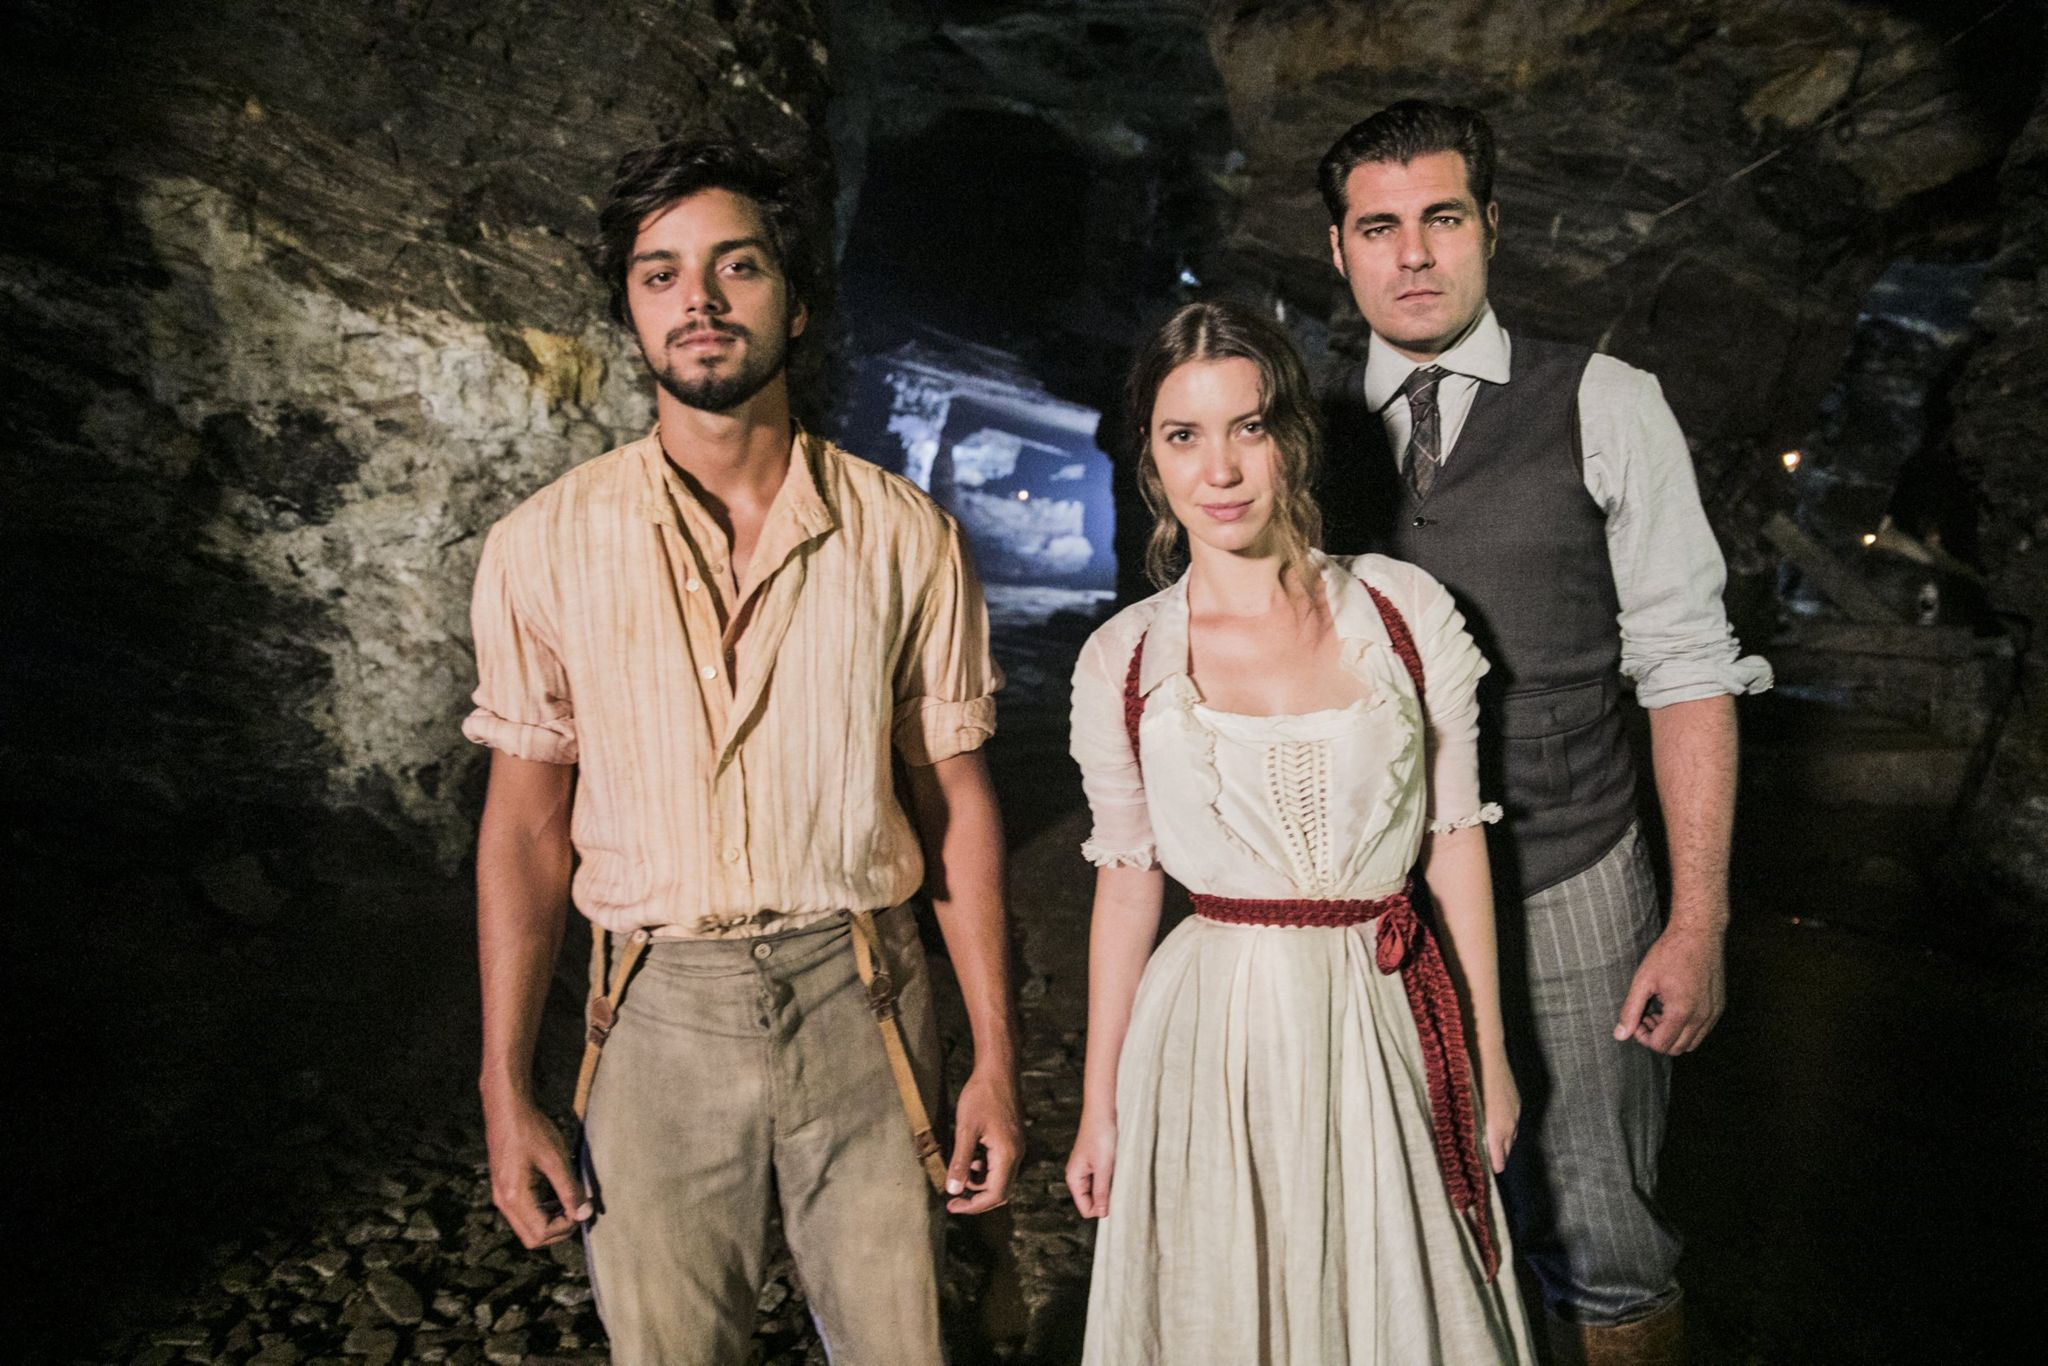 Three characters in the soap opera pictured in a mine